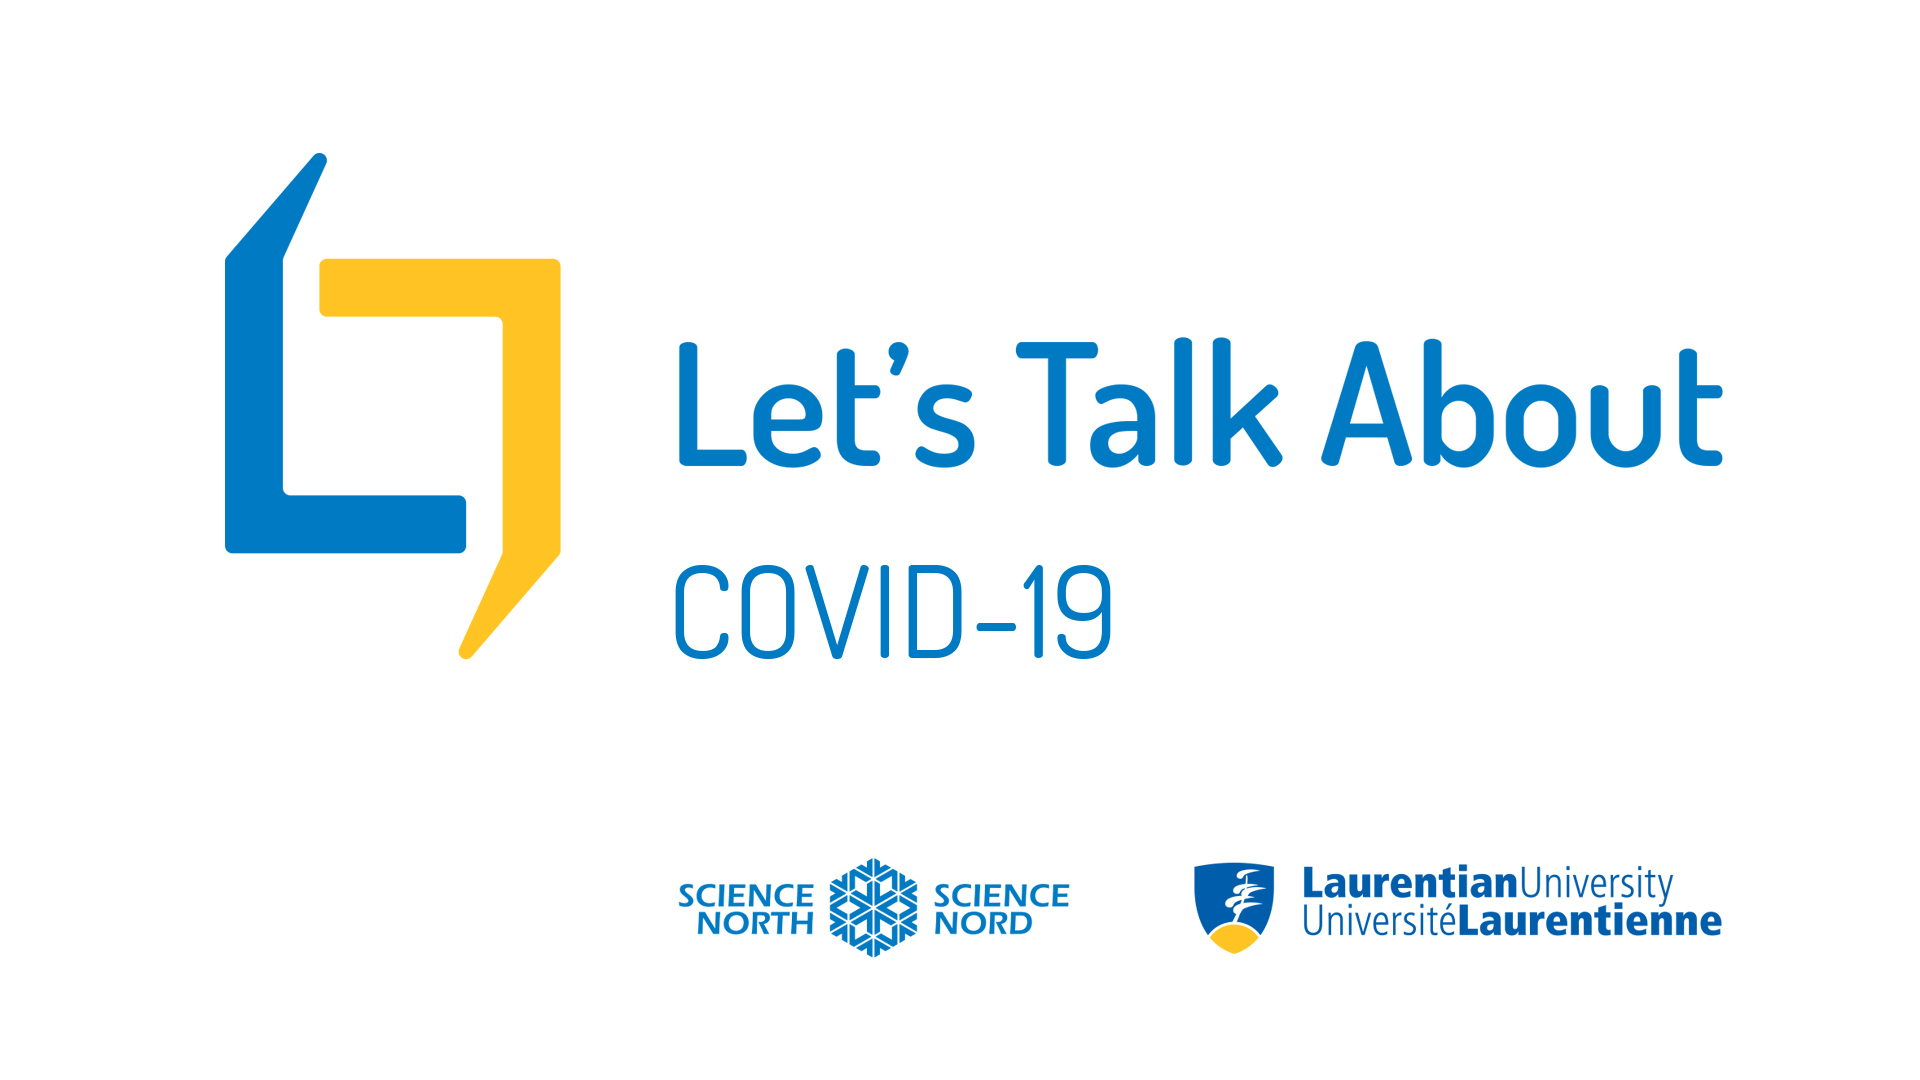 let's talk about covid-19